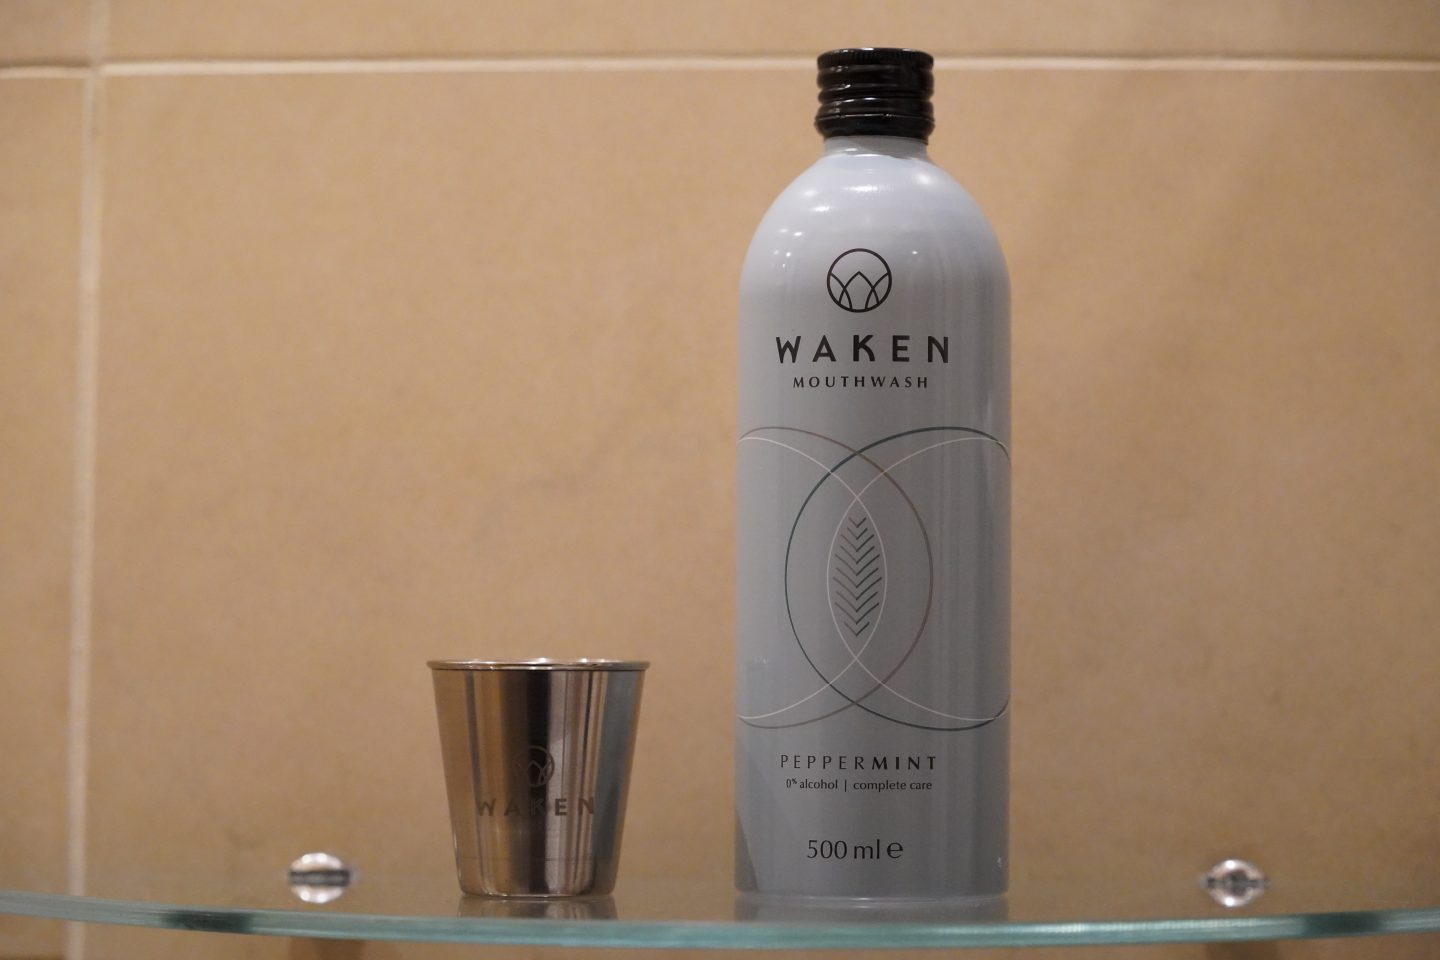 Maketh_the_Man-Anton_Welcome-Waken_mouthwash-peppermint